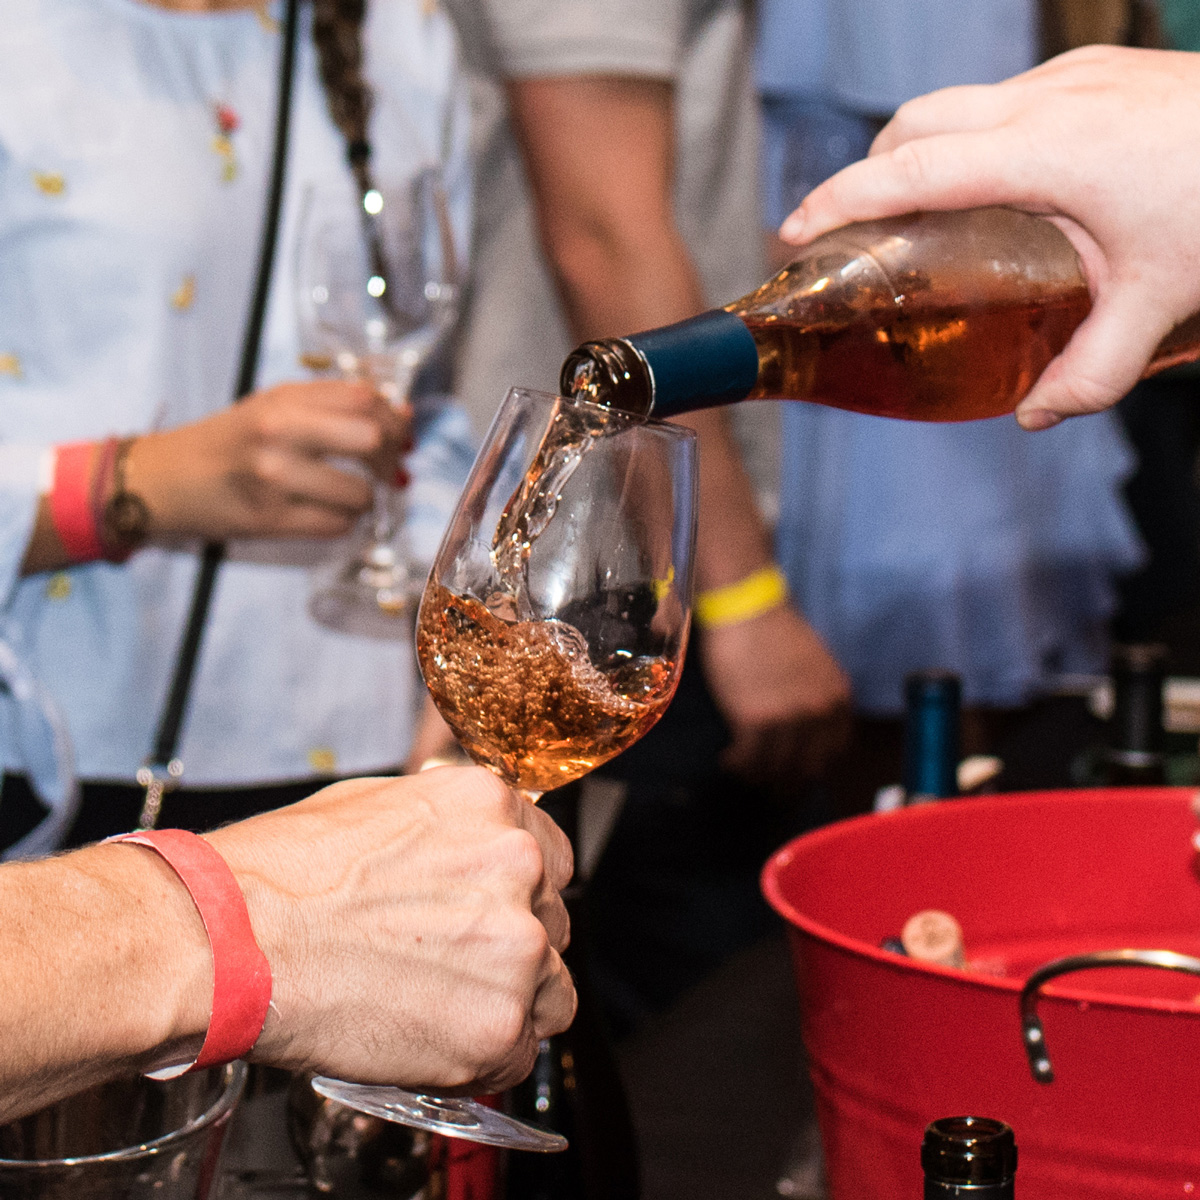 A World of Wine   There will be plenty to wine about at Lamb Jam Denver! Taste some locally made and oh-so-cool sips from  Infinite Monkey Theorum  and  Bookcliff Vineyards , then explore a selection of wines from down under with  Molly Dooker , all curated to pair perfectly with lamb.